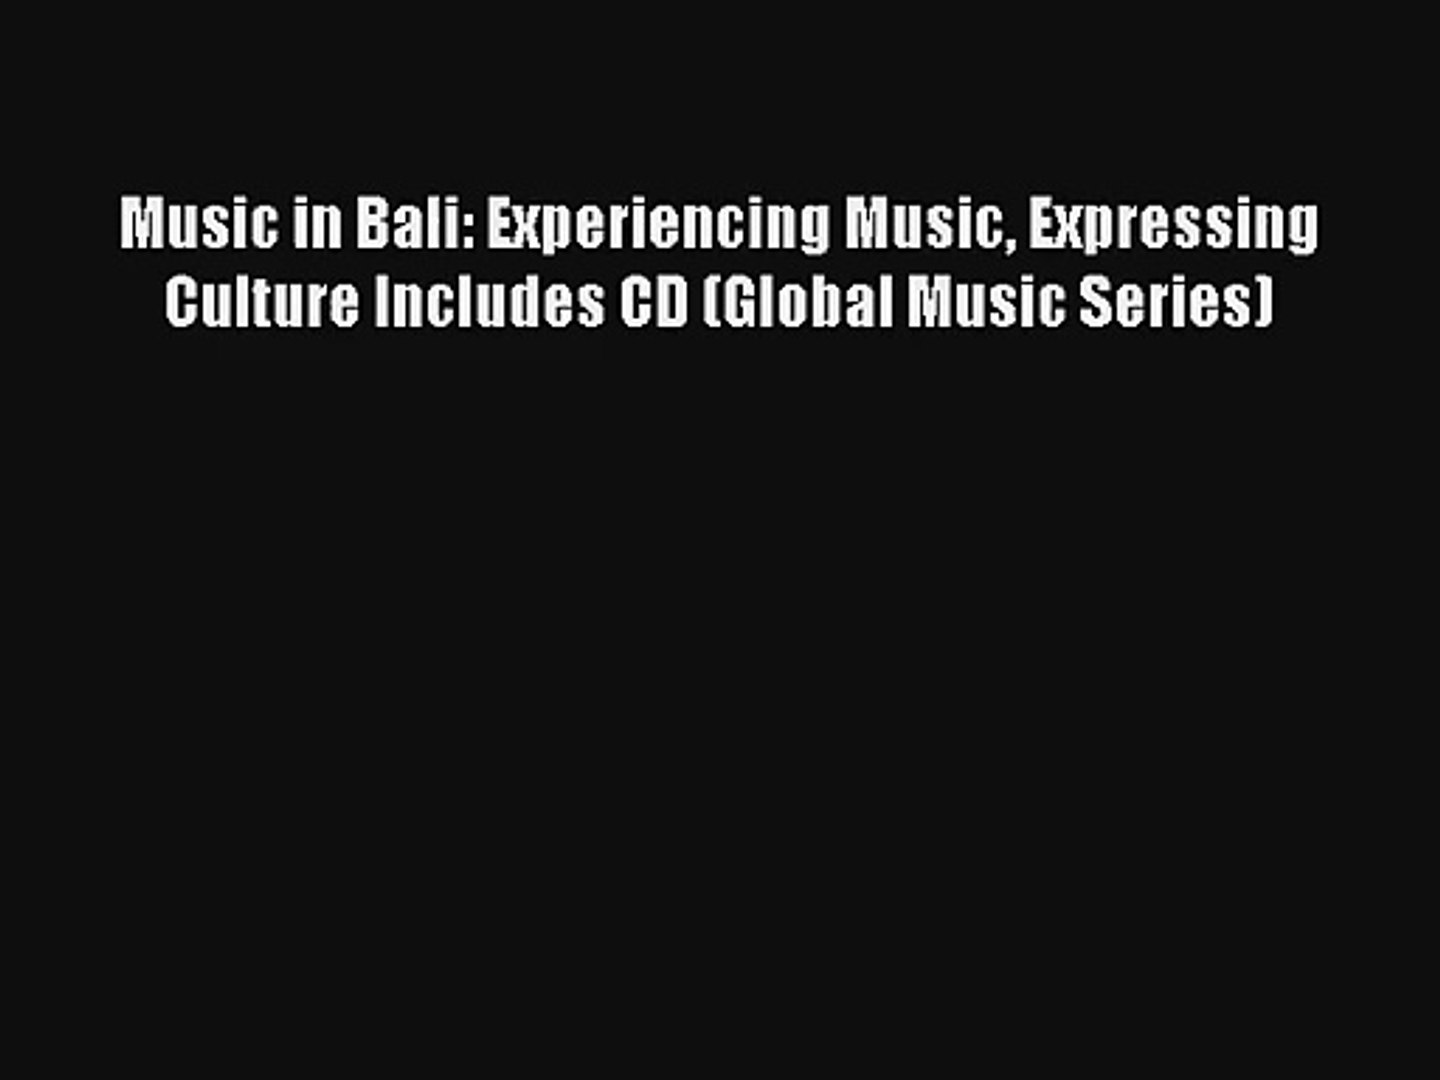 [PDF Download] Music in Bali: Experiencing Music Expressing Culture Includes CD (Global Music